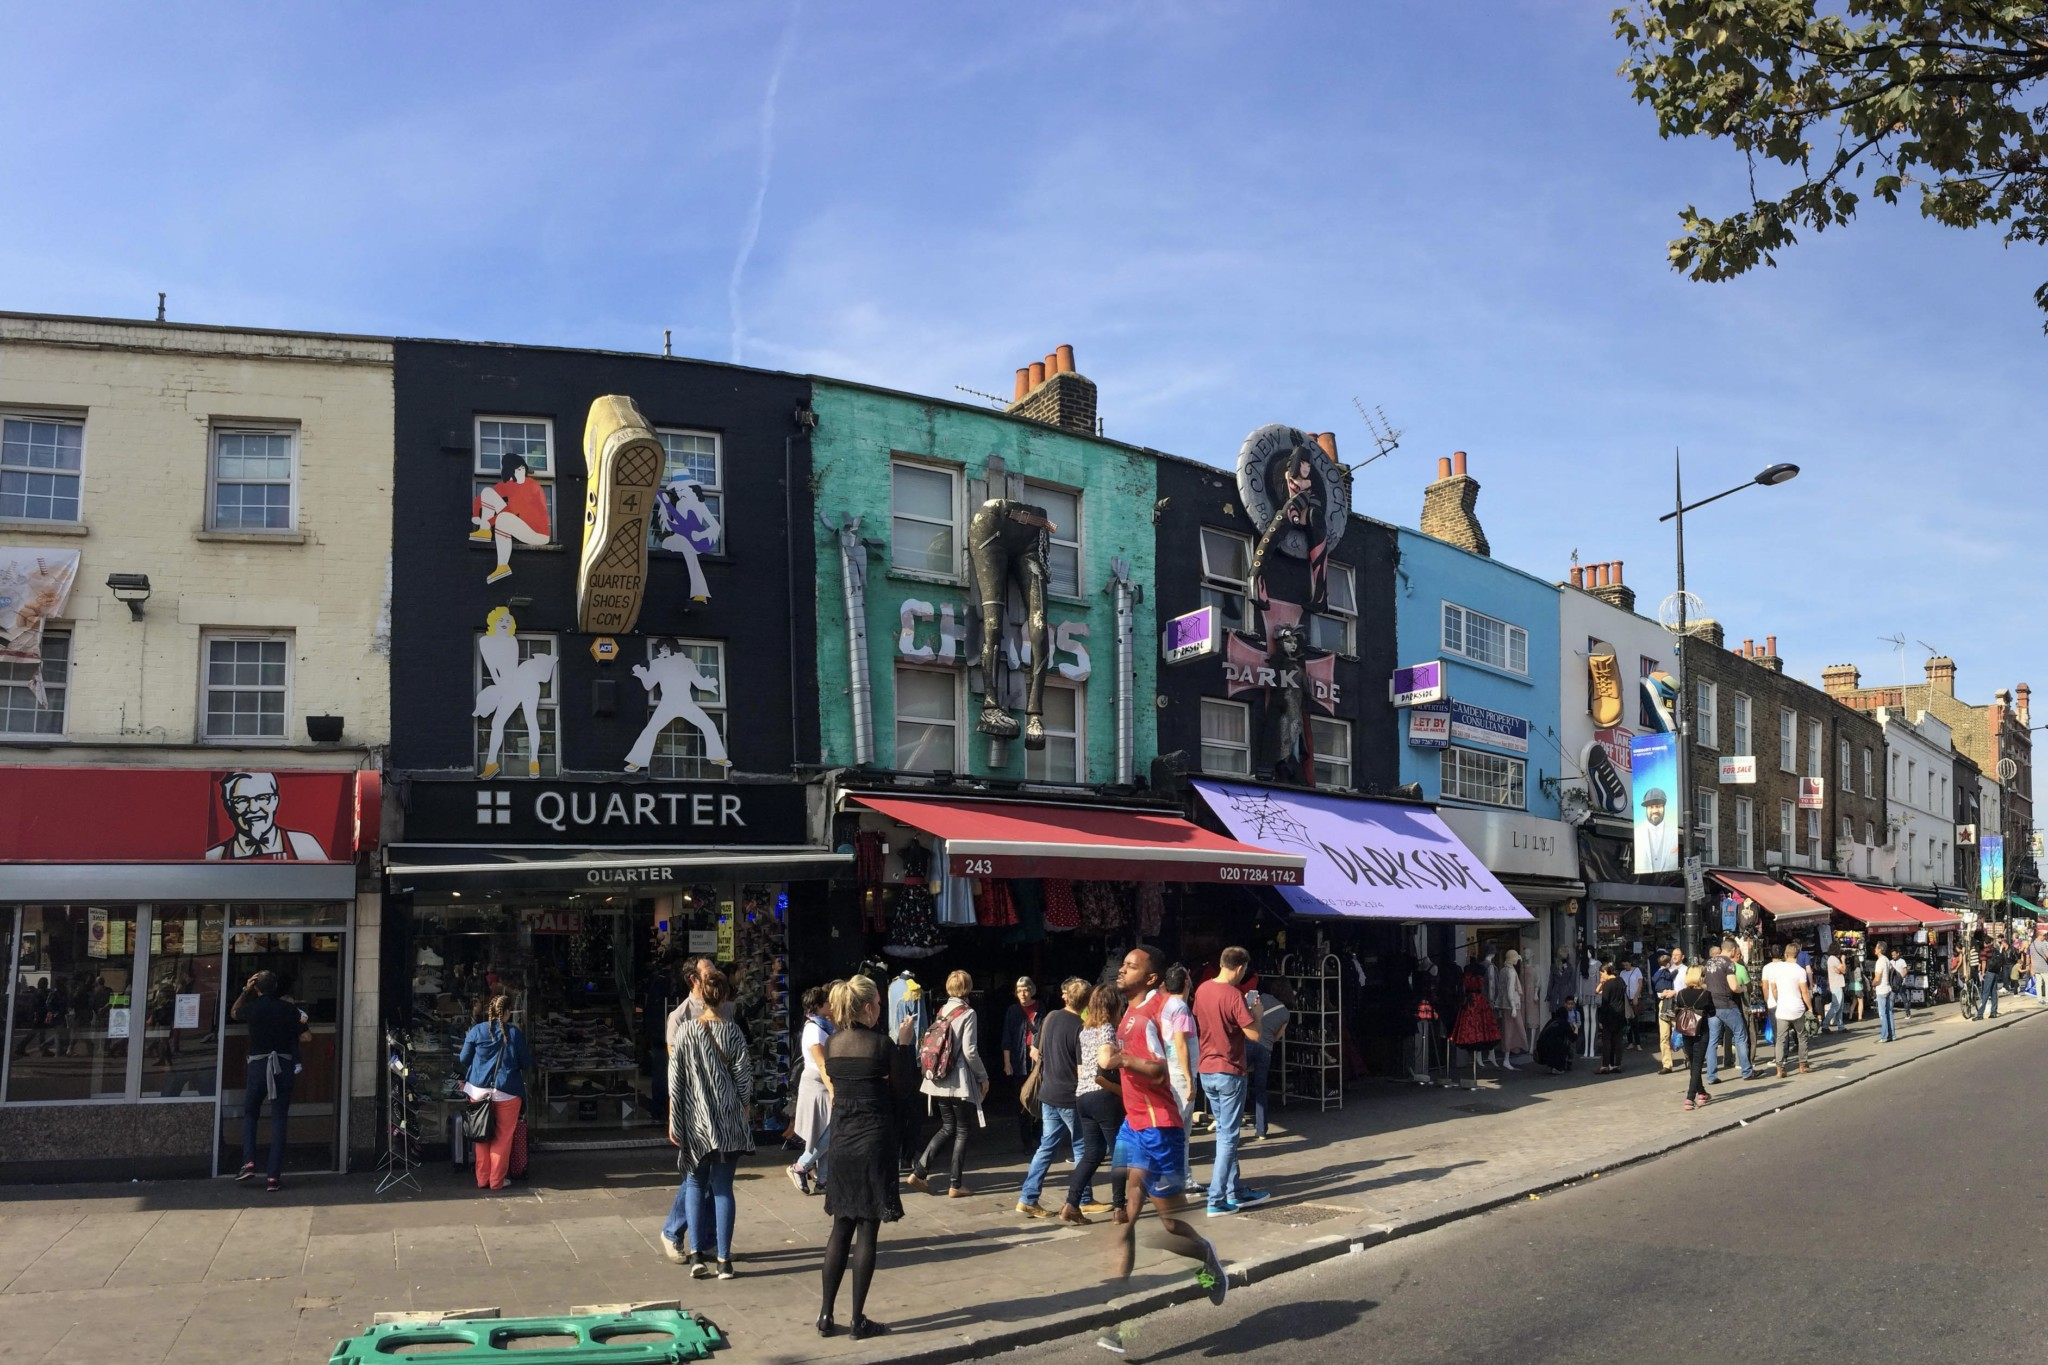 Camden Town in London